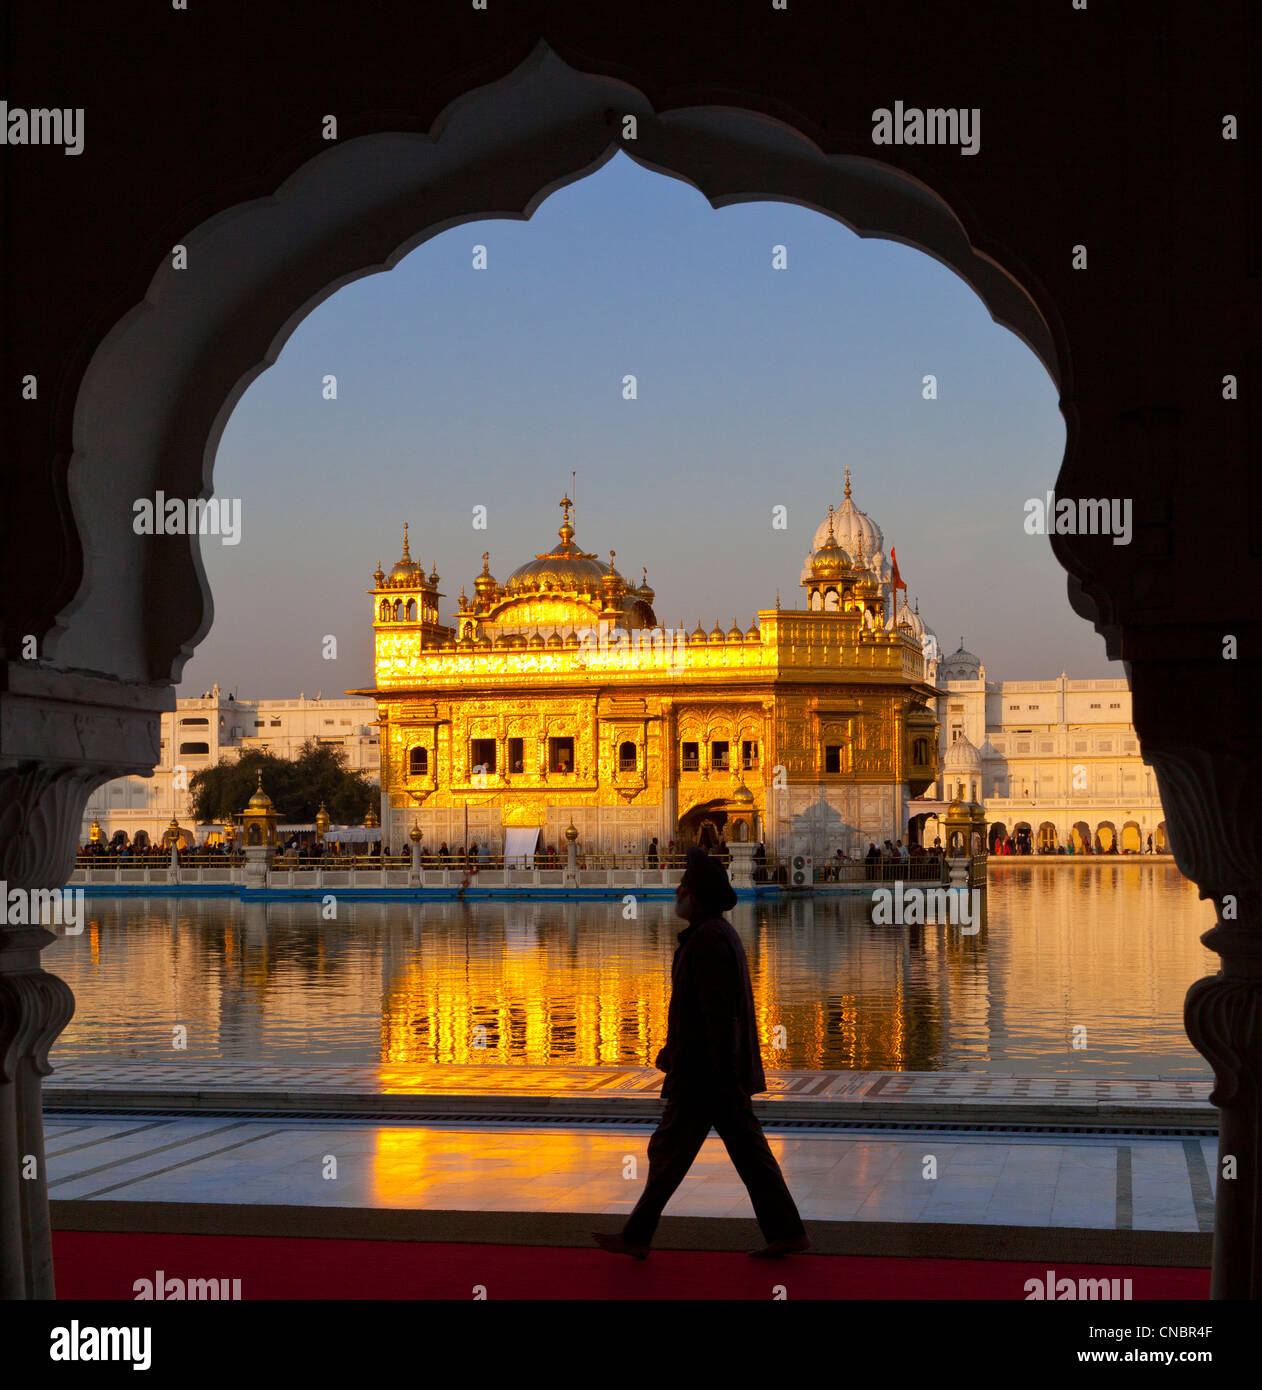 India Punjab, Amritsar e Tempio Dorato in golden. La luce del mattino Foto Stock